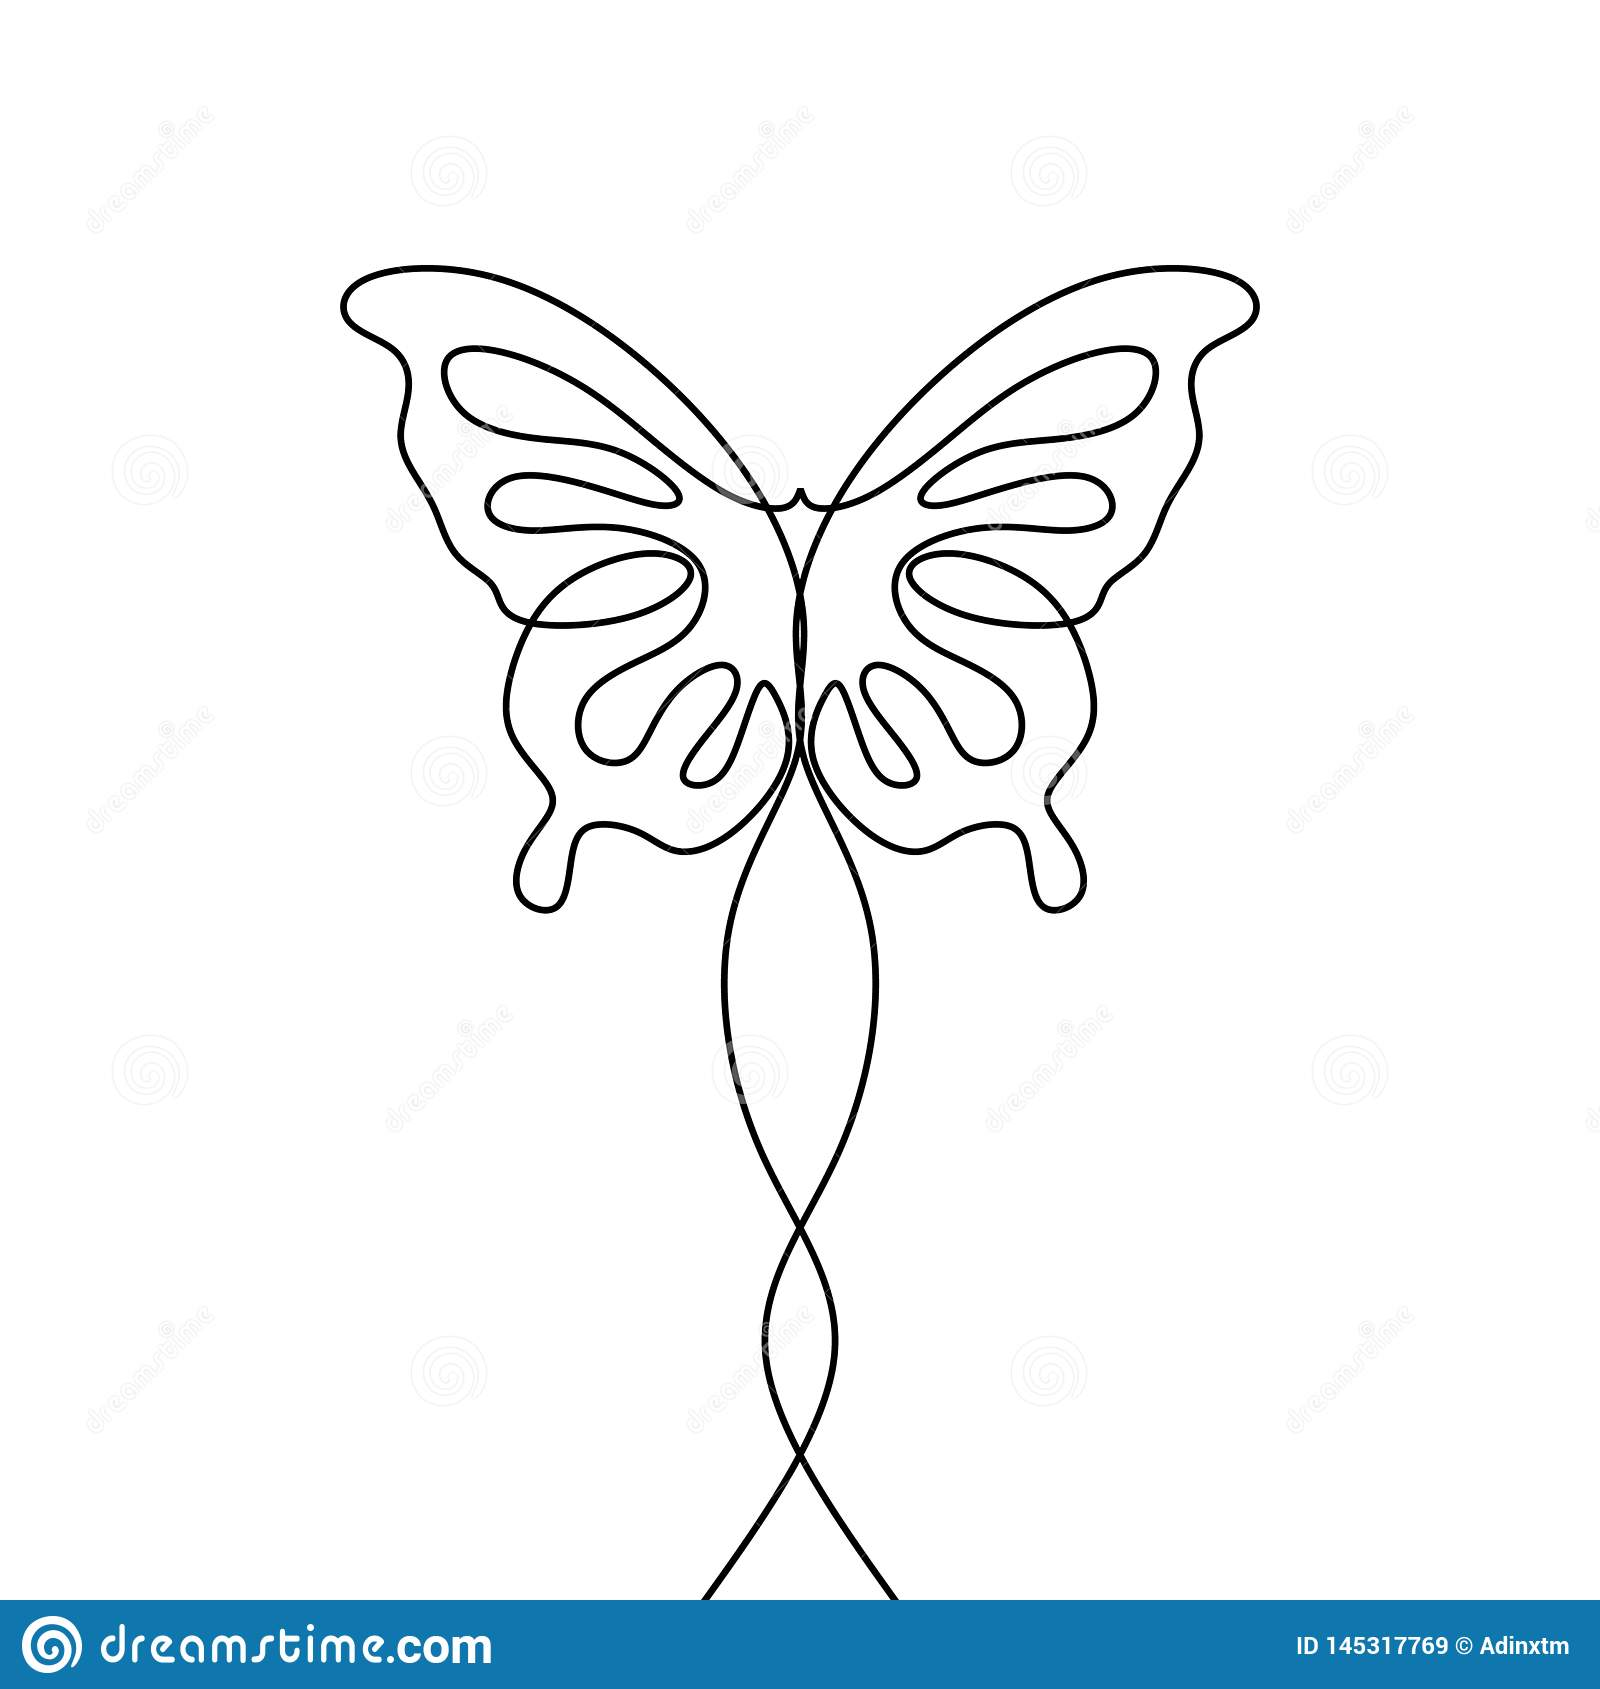 Butterfly with patterns on the wings continuous one line drawing element isolated on white background for logo or decorative